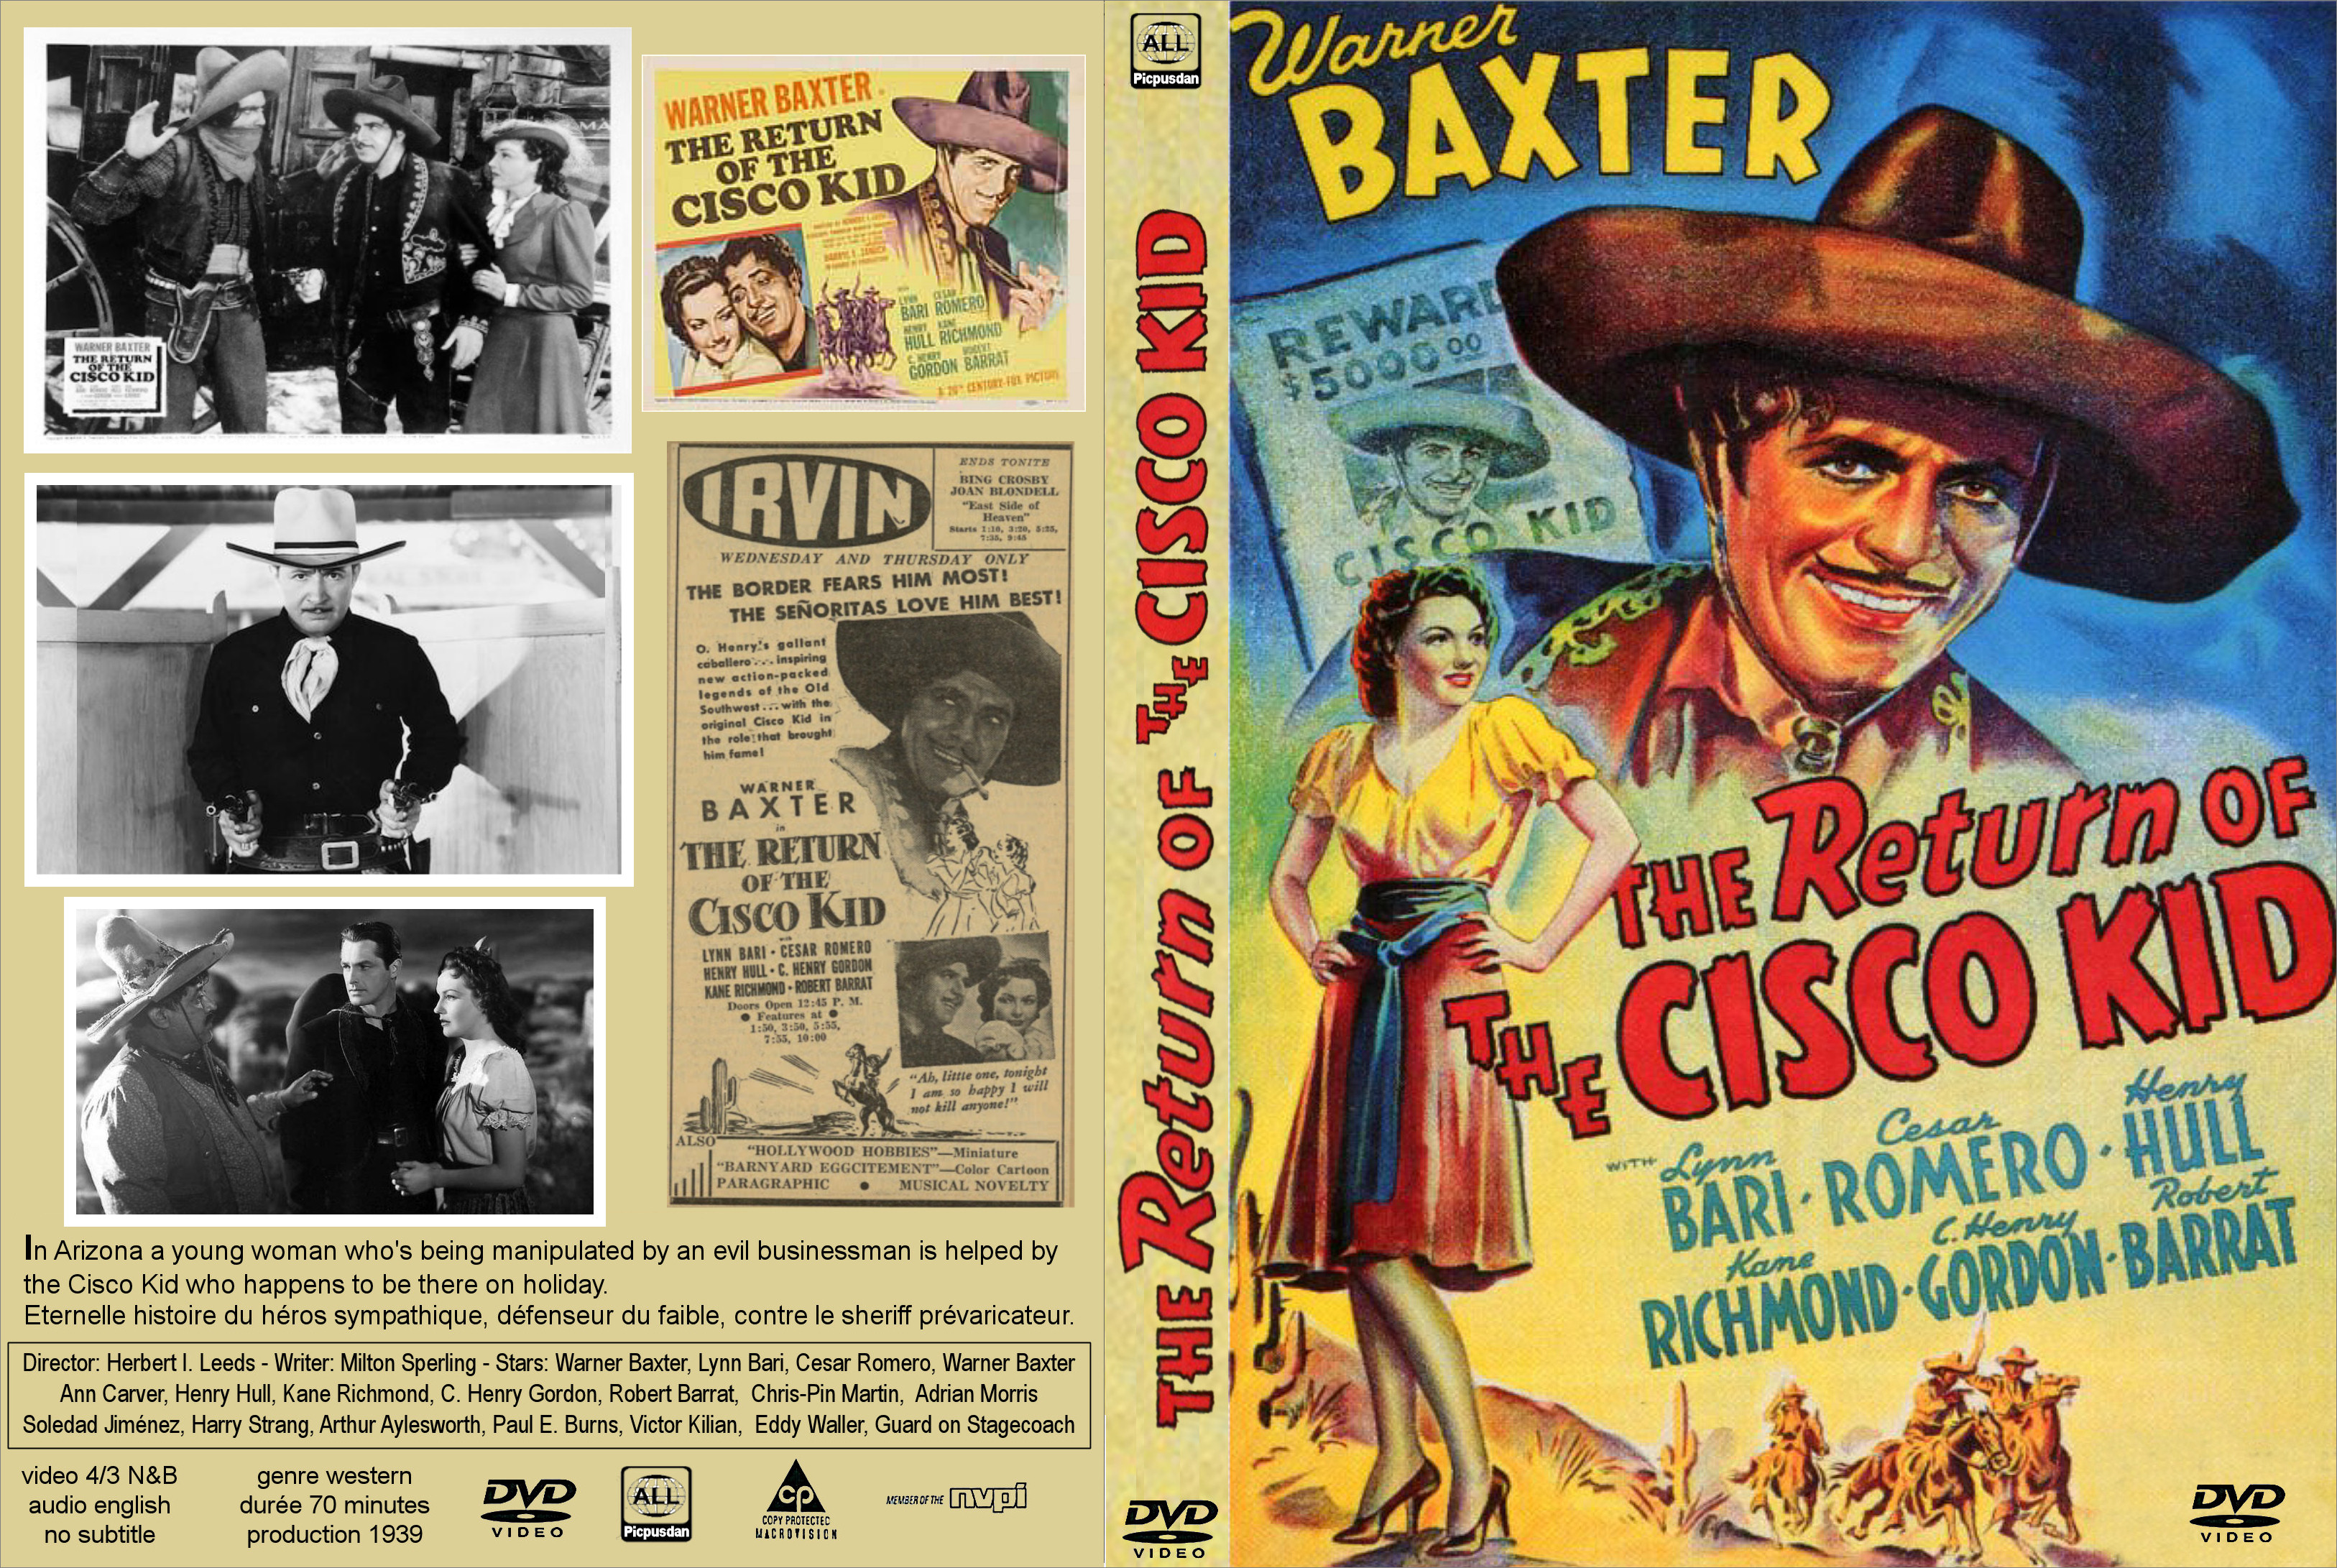 Titre Face Dos Cd Dvd THE RETURN OF CISCO KID